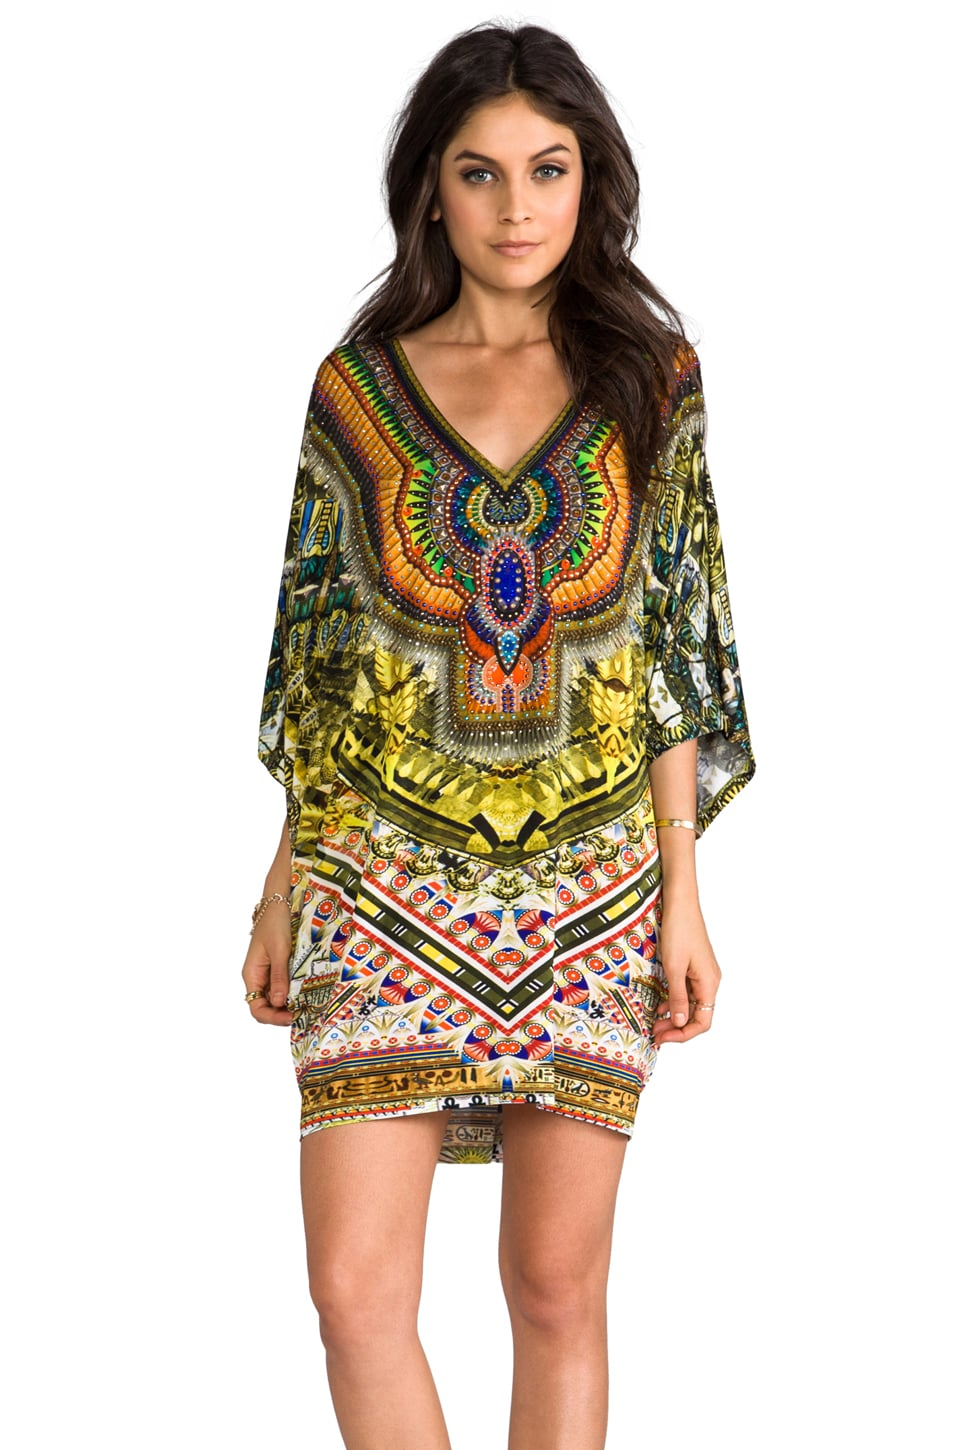 Camilla Sands of Egypt Bat Sleeve Dress in Eye of Horus